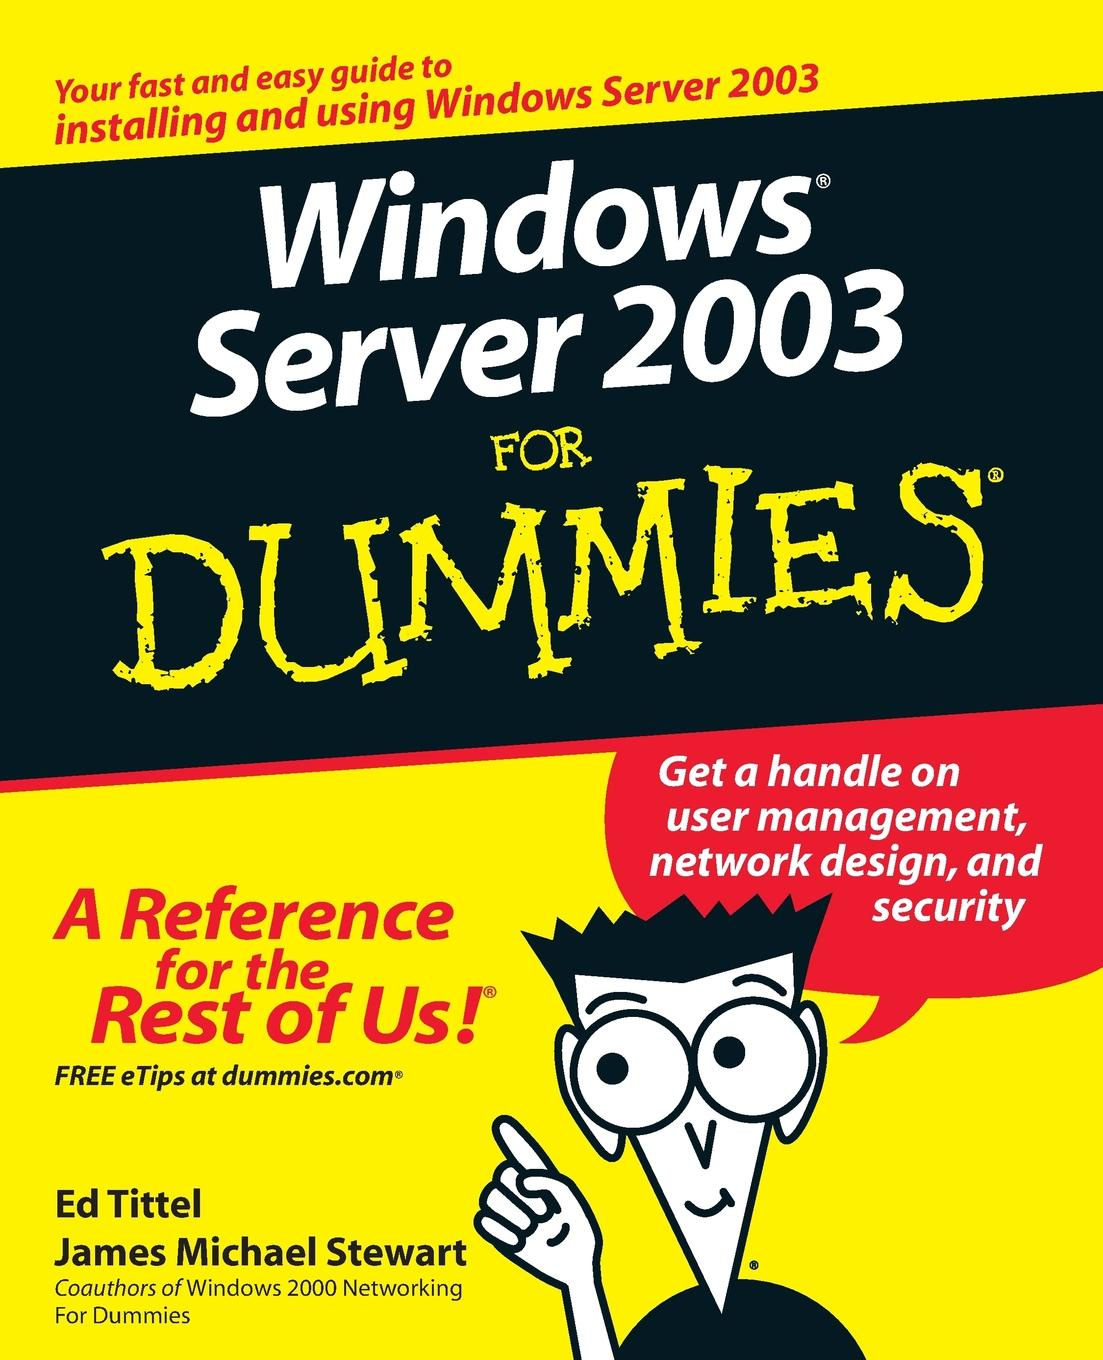 Tittel, Stewart Windows Server 2003 For Dummies greg harvey windows xp for dummies quick reference